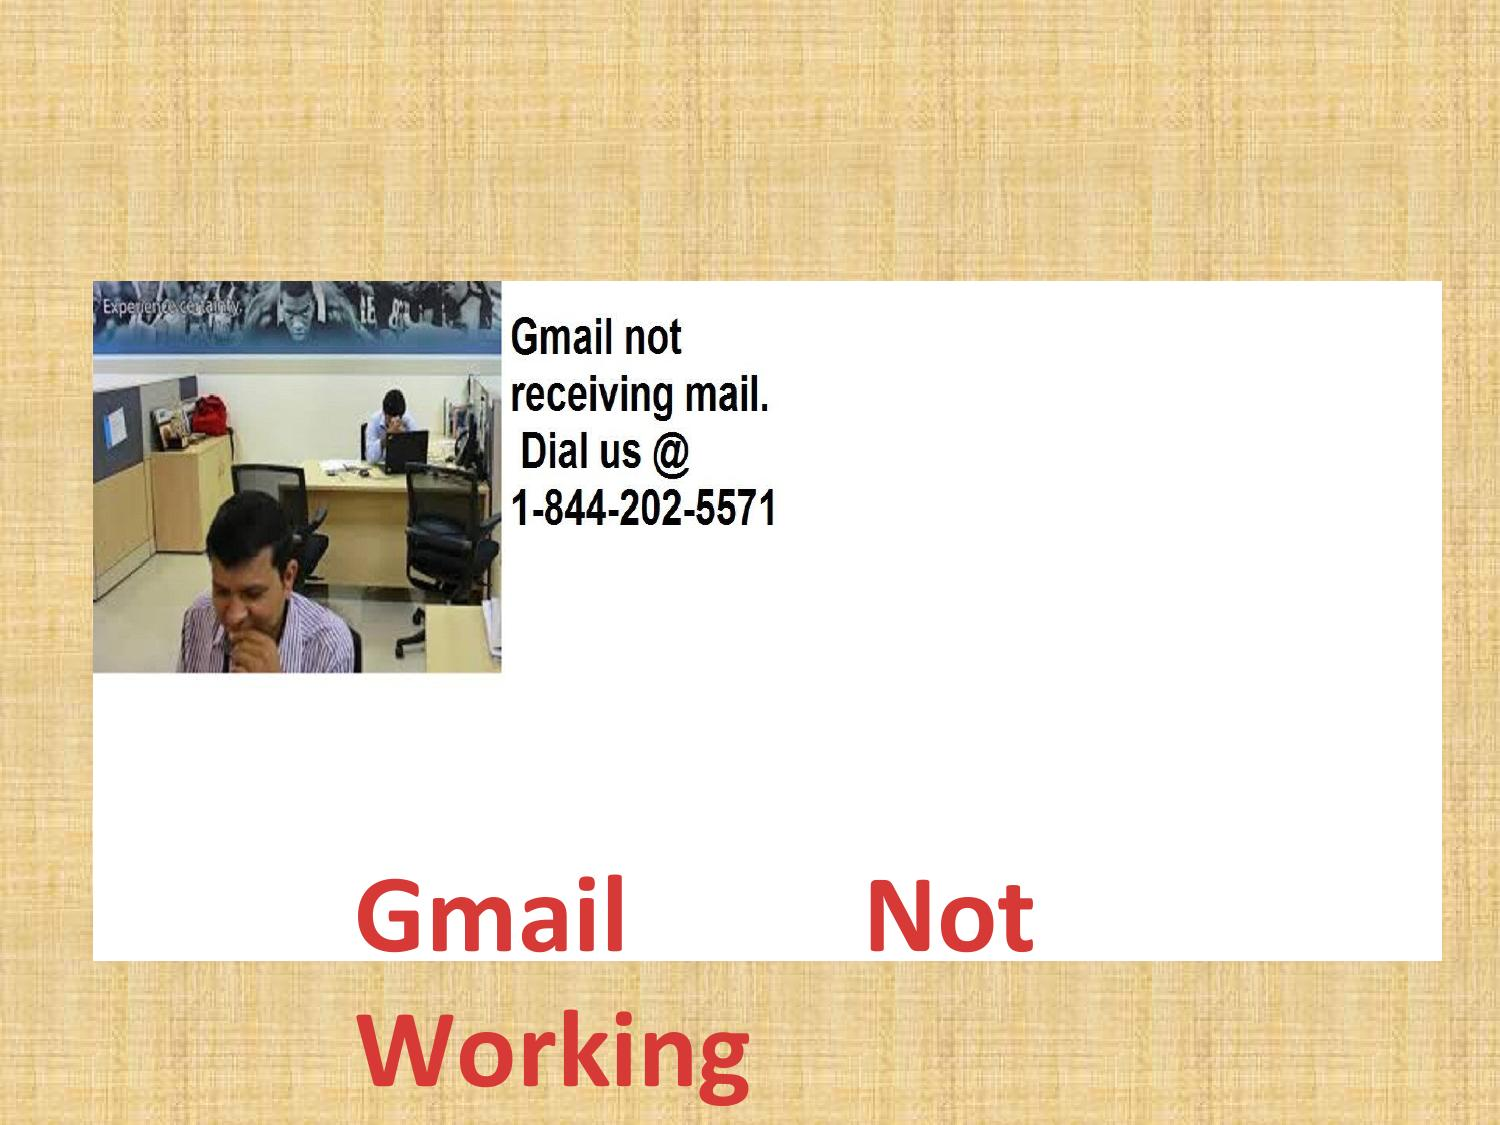 1-844-202-5571|What if Gmail not receiving emails on Ipad